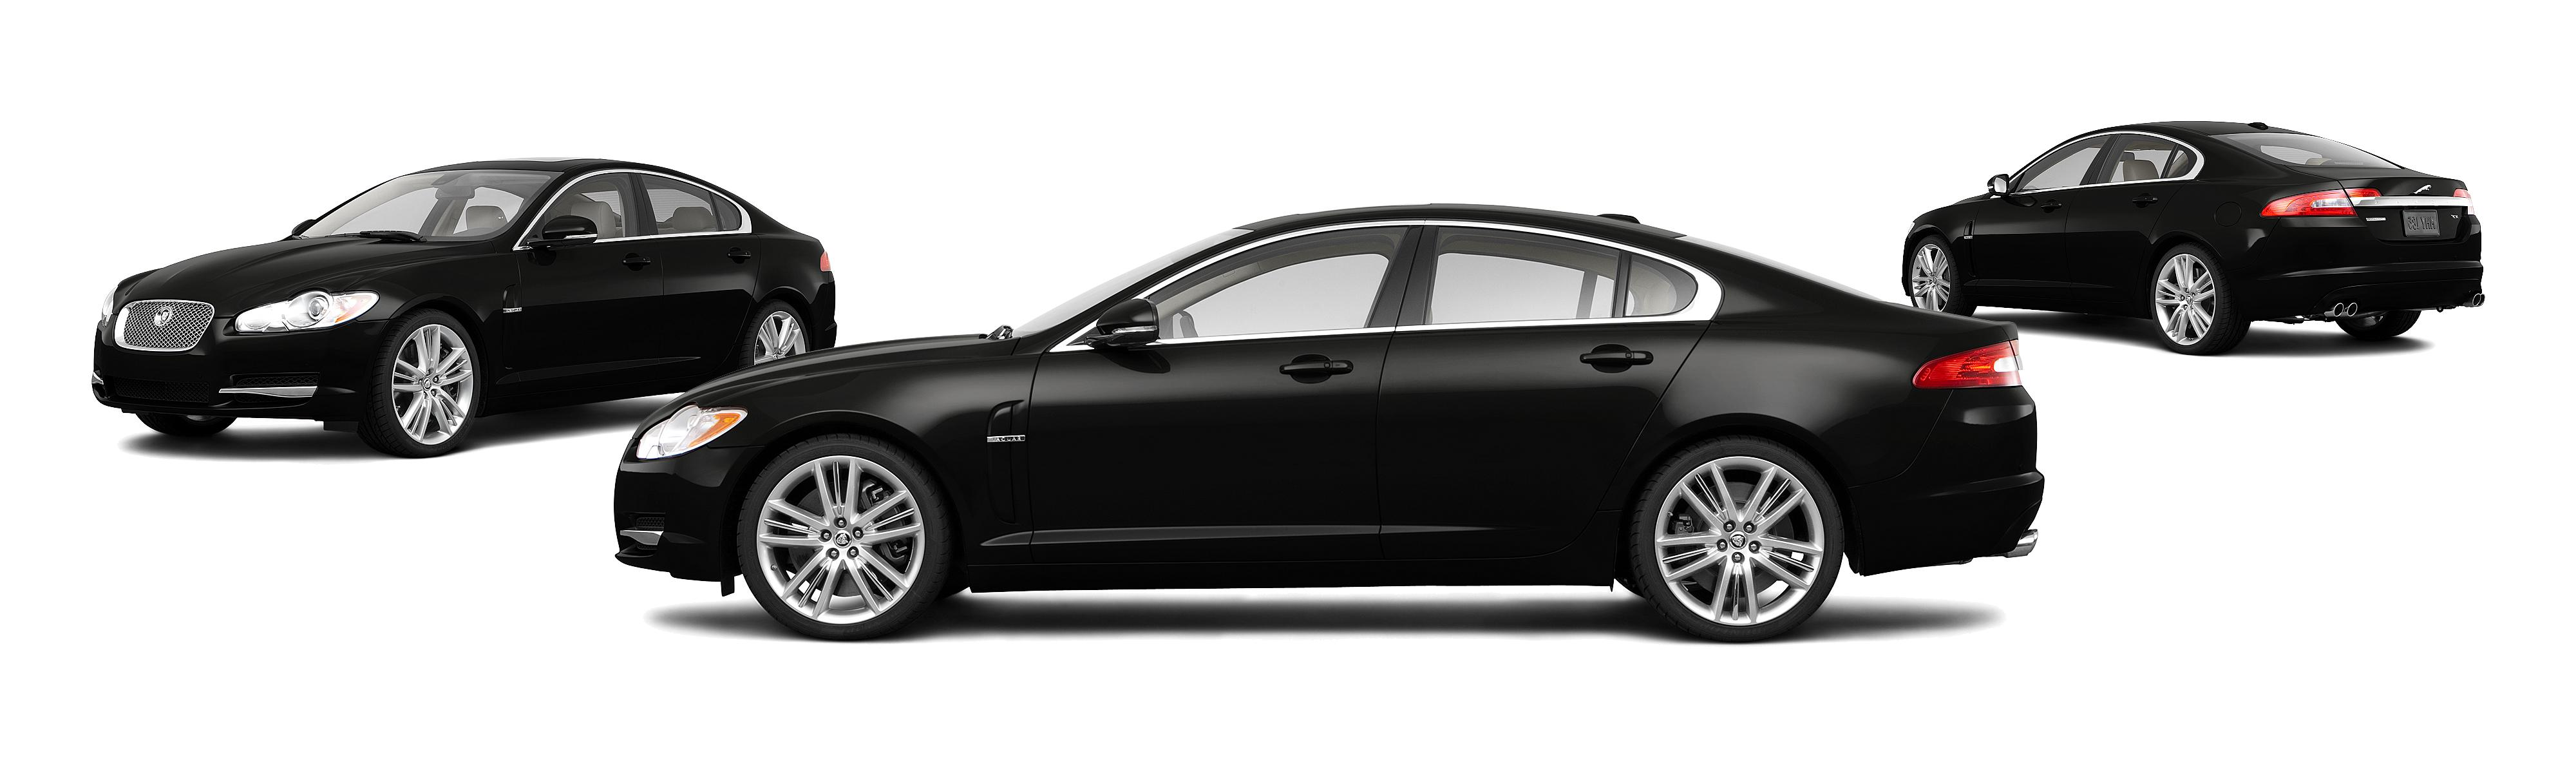 l door side jaguar view image exterior supercharged xf sedan